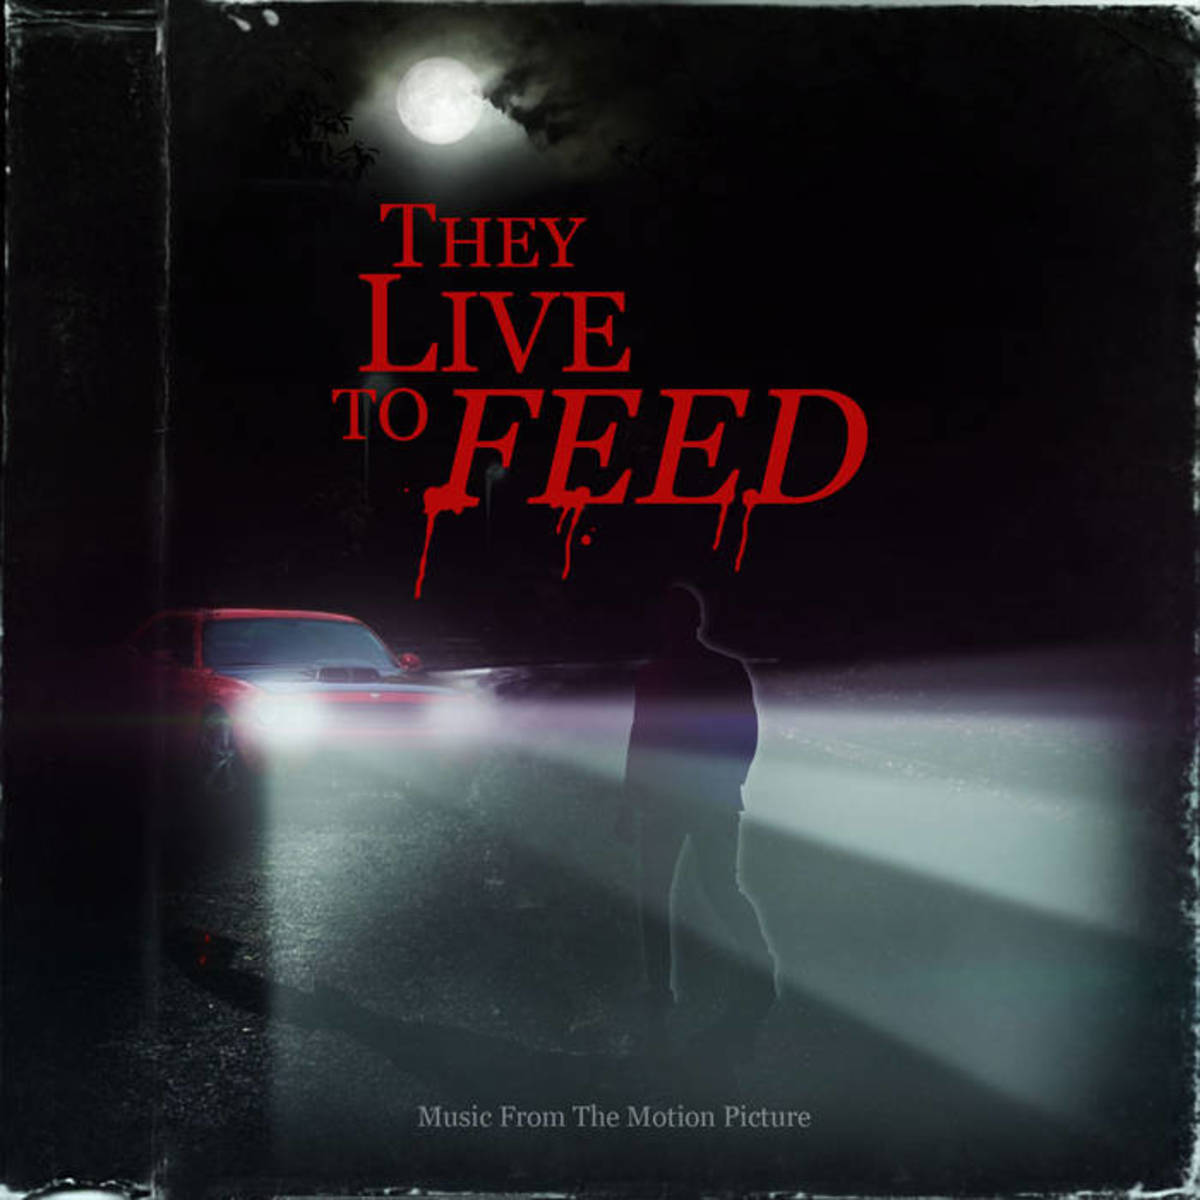 synth-album-review-they-live-to-feed-by-jetfire-prime